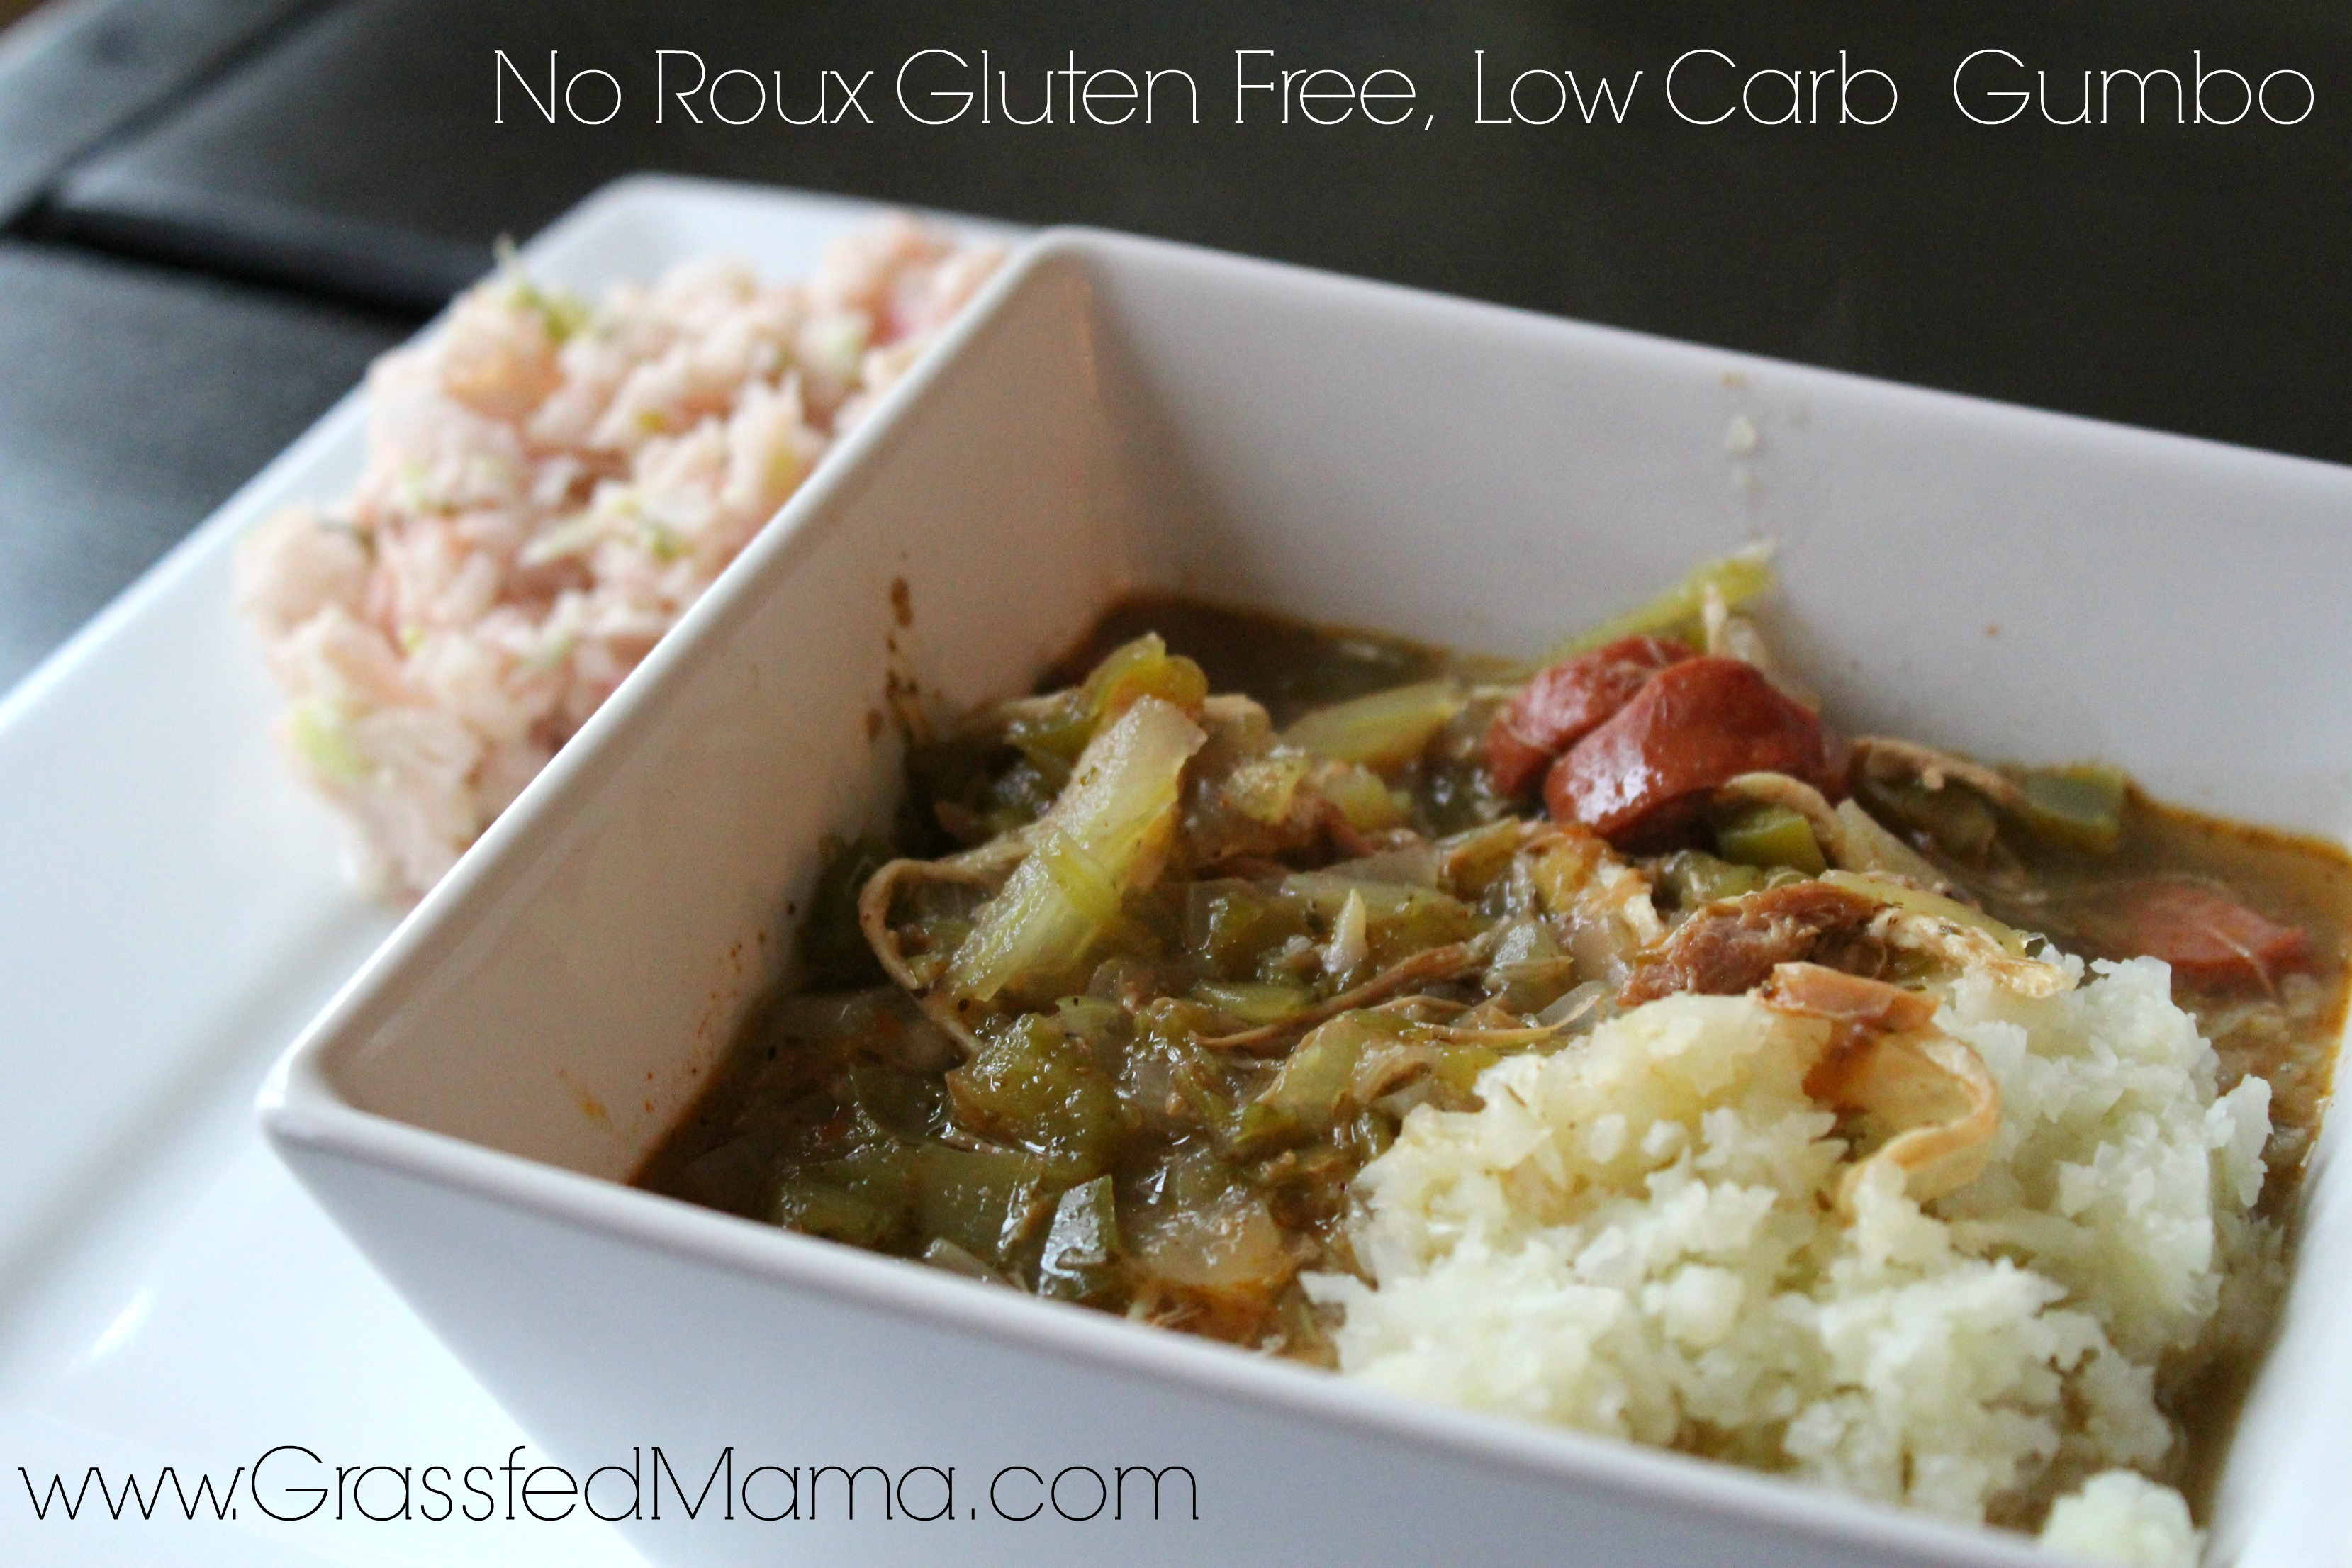 low carb, no roux, gluten free gumbo